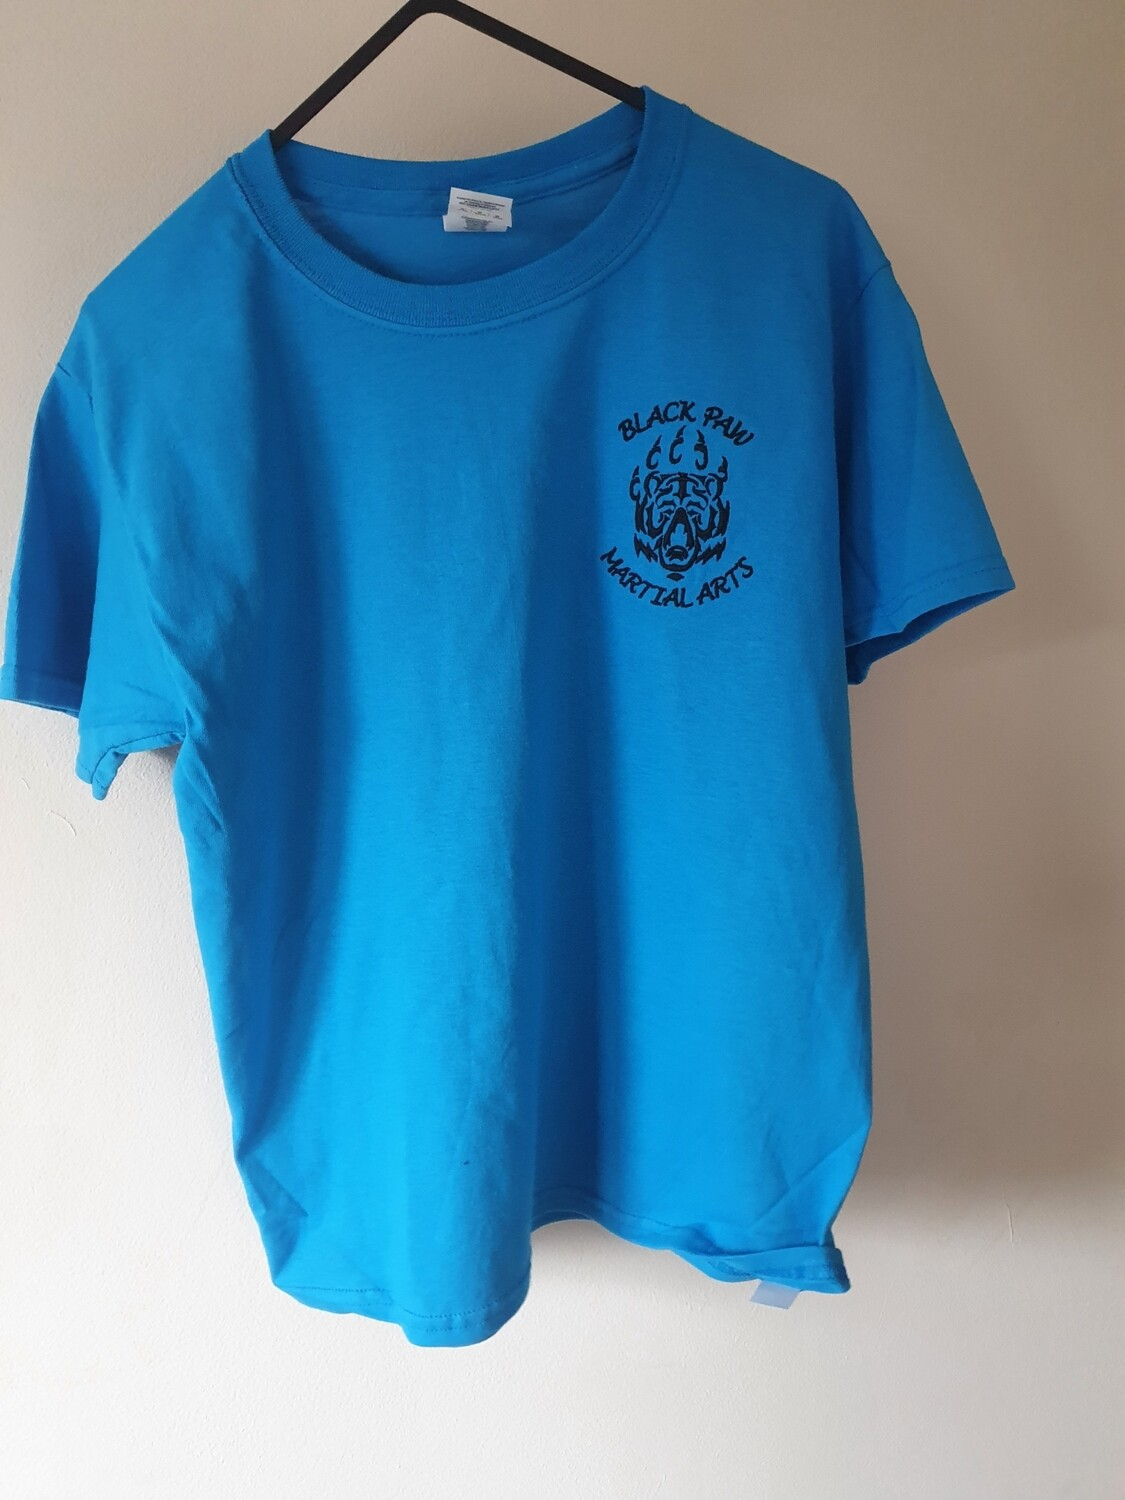 BPMA Little Bears Combat Tshirt (Must be worn with the Combat Trousers)